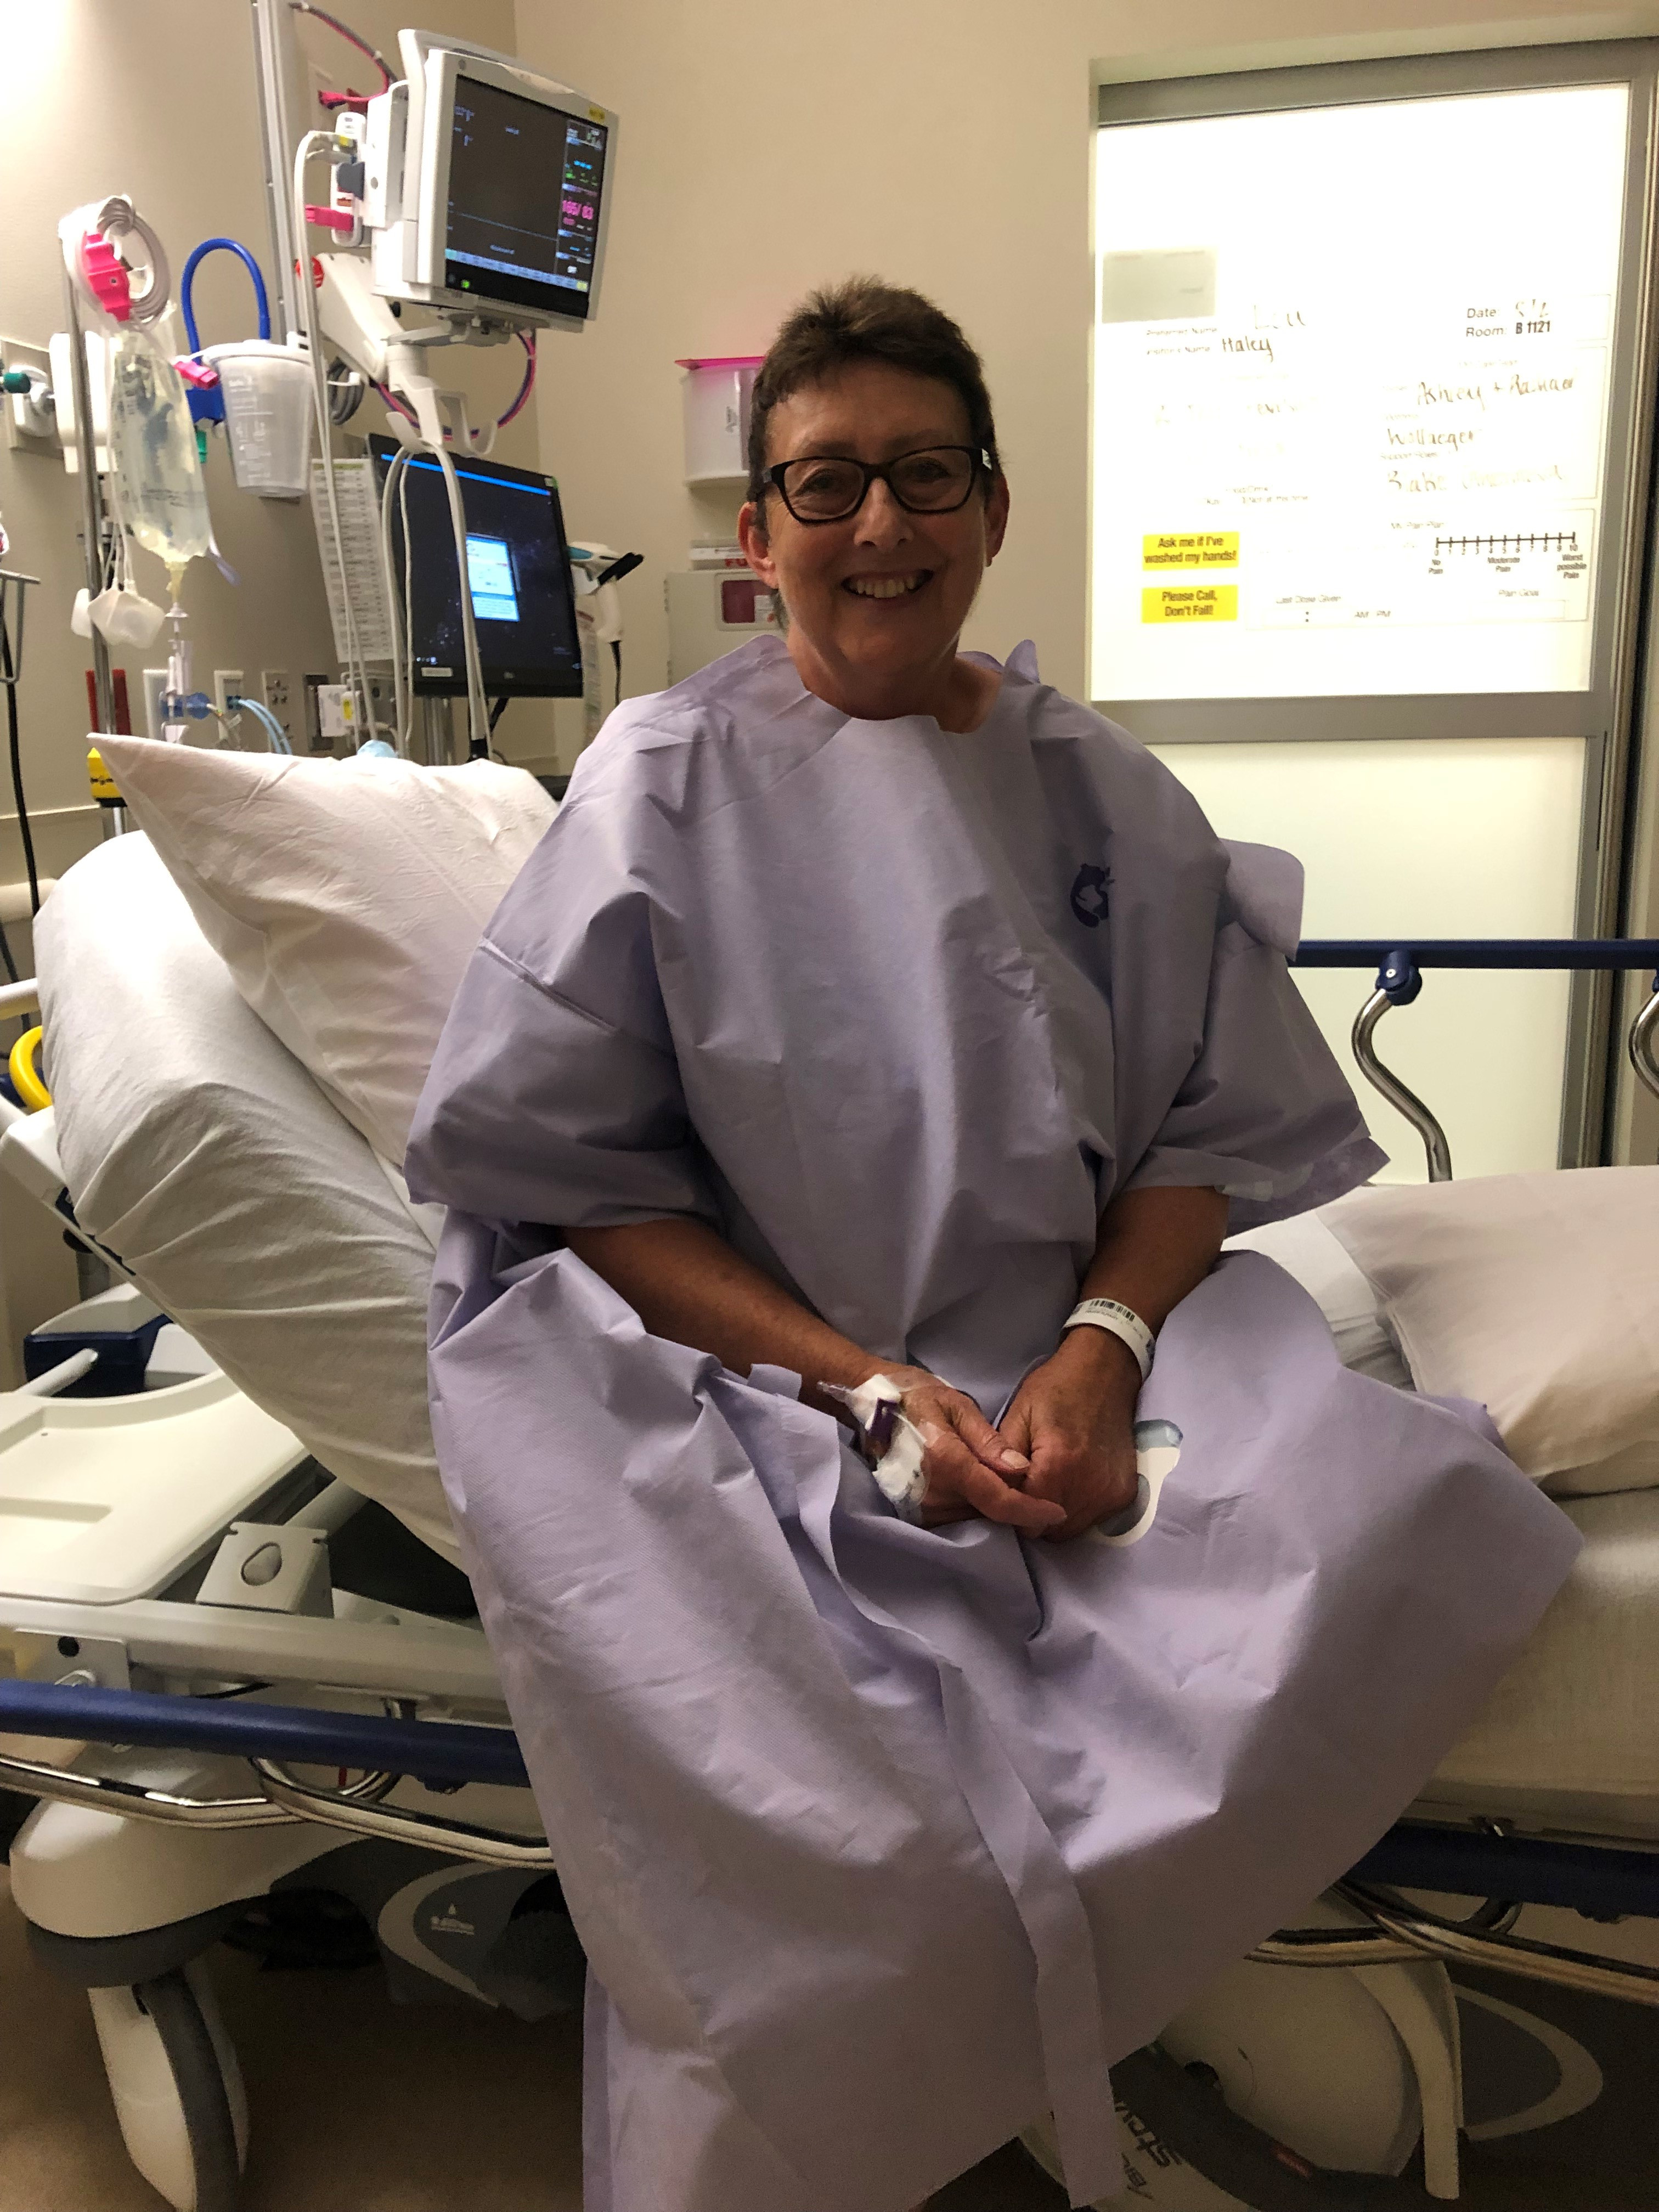 Mary Lou Madden has a positive outlook on life. She has had two knee replacements and recently underwent knee revision surgery with Dr.John K. Wollaeger.